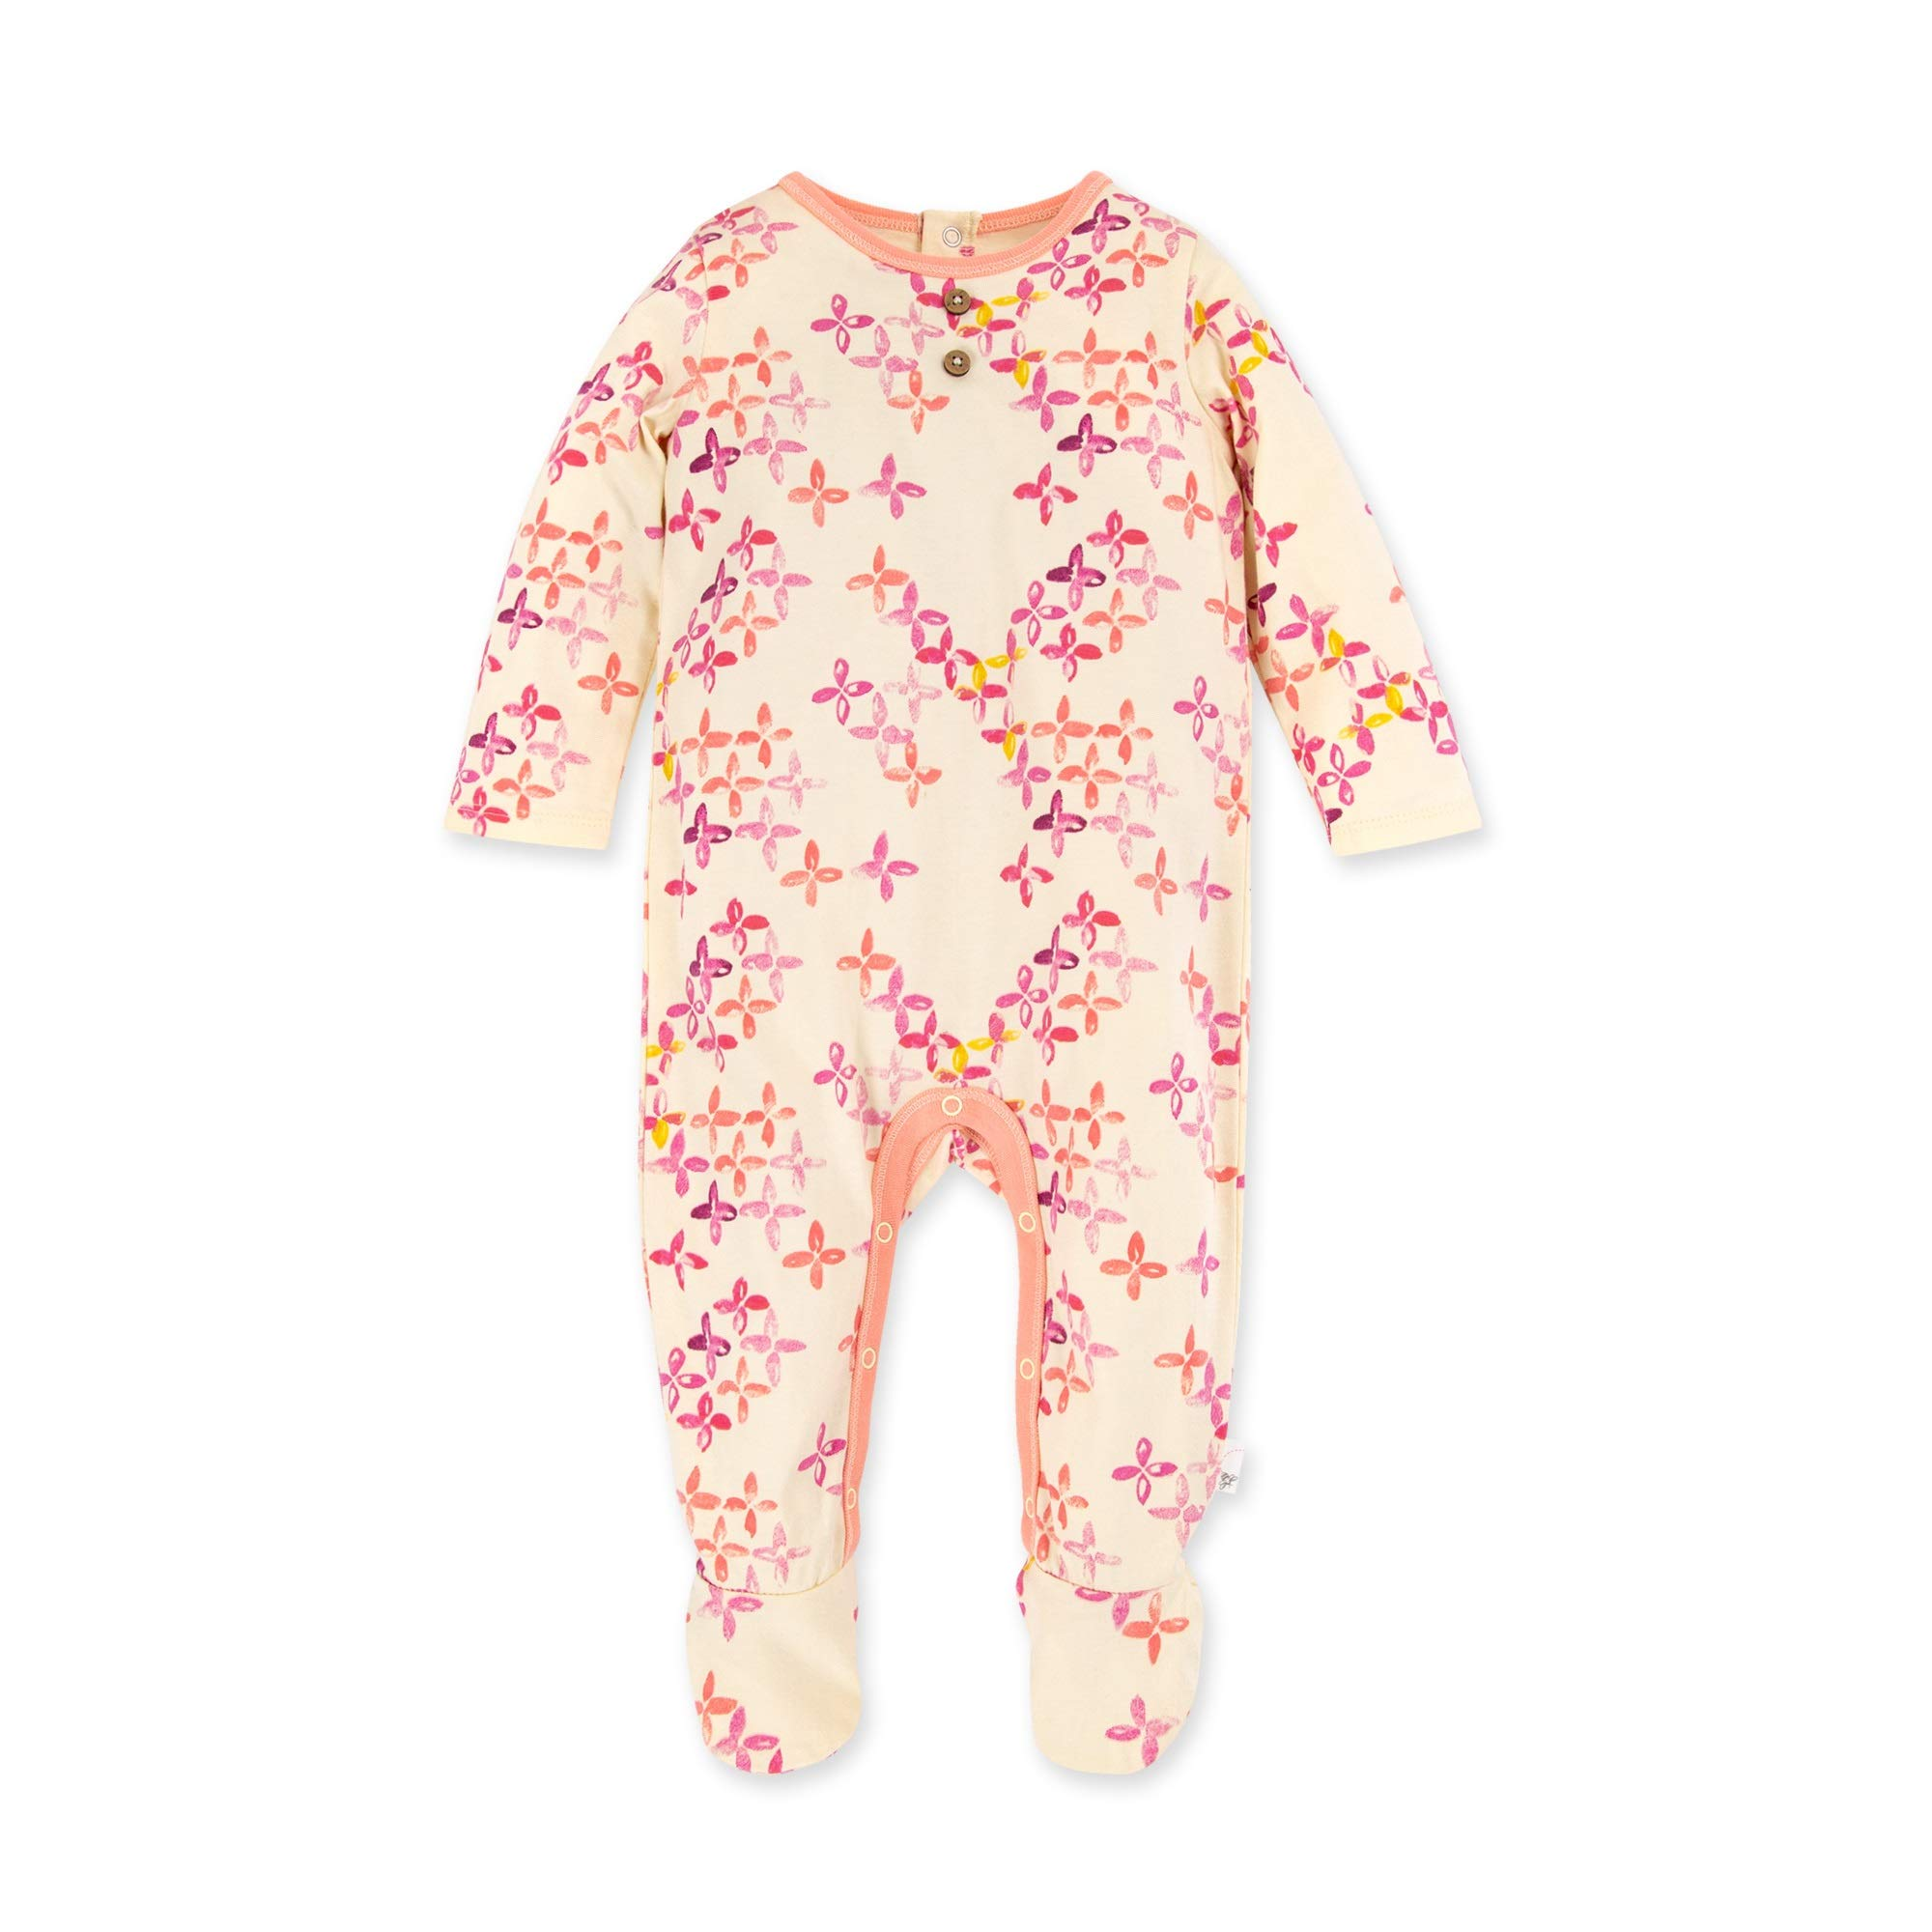 Burt's Bees Baby Baby Girls' Romper Jumpsuit, 100% Organic Cotton One-Piece Coverall